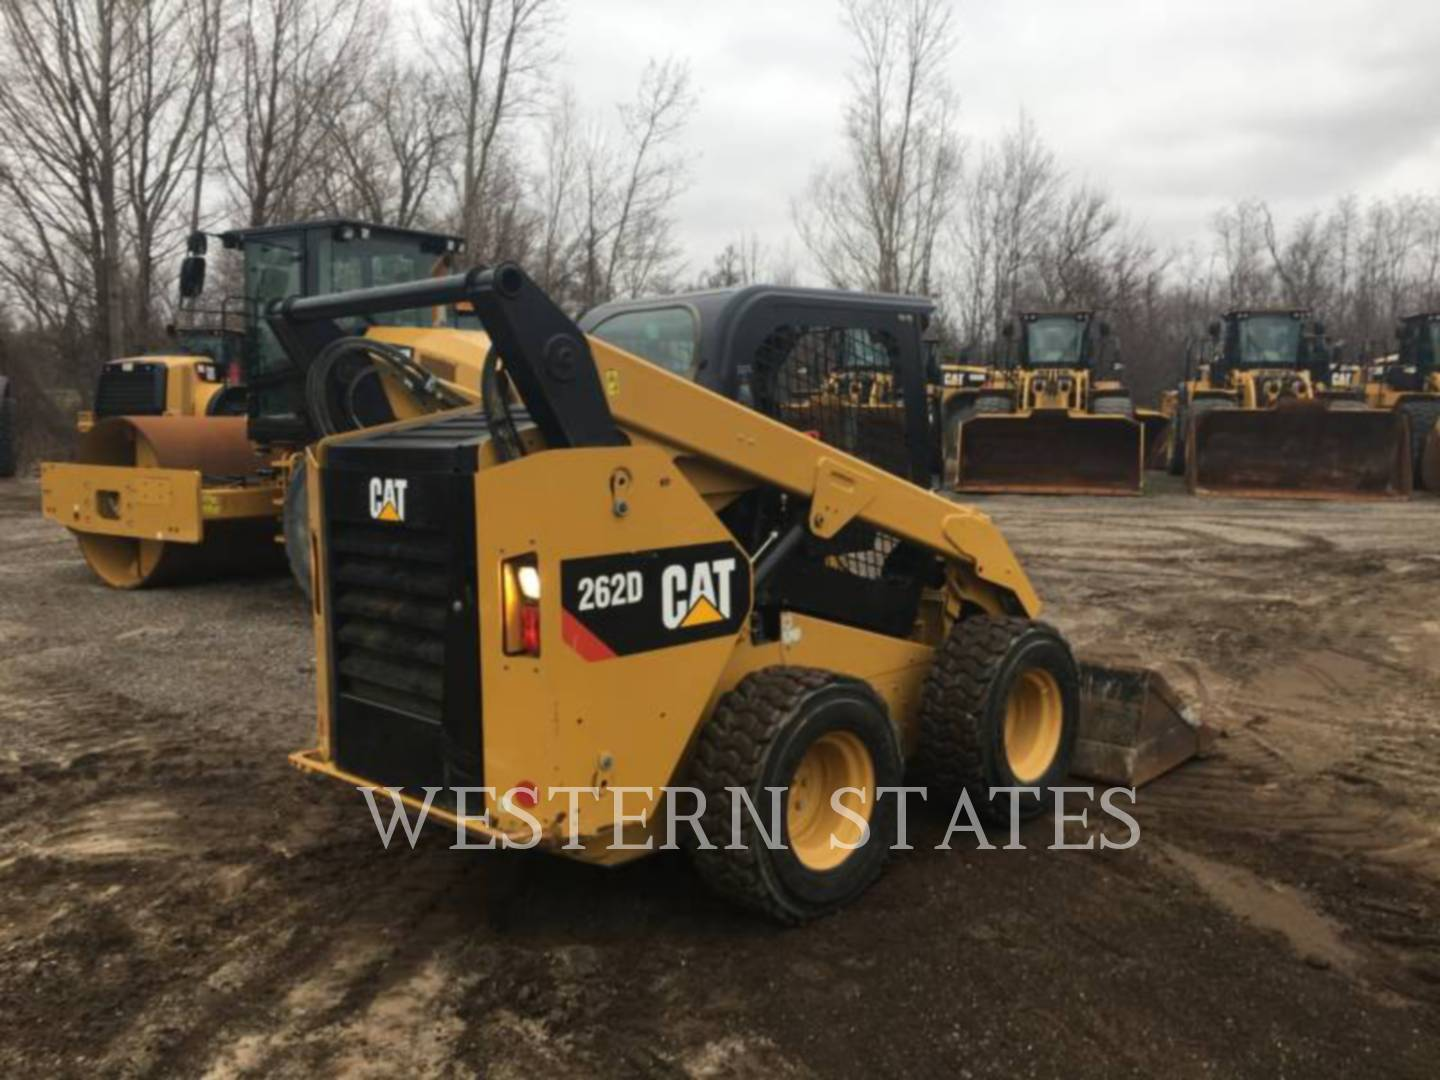 2014 CATERPILLAR 262D image3